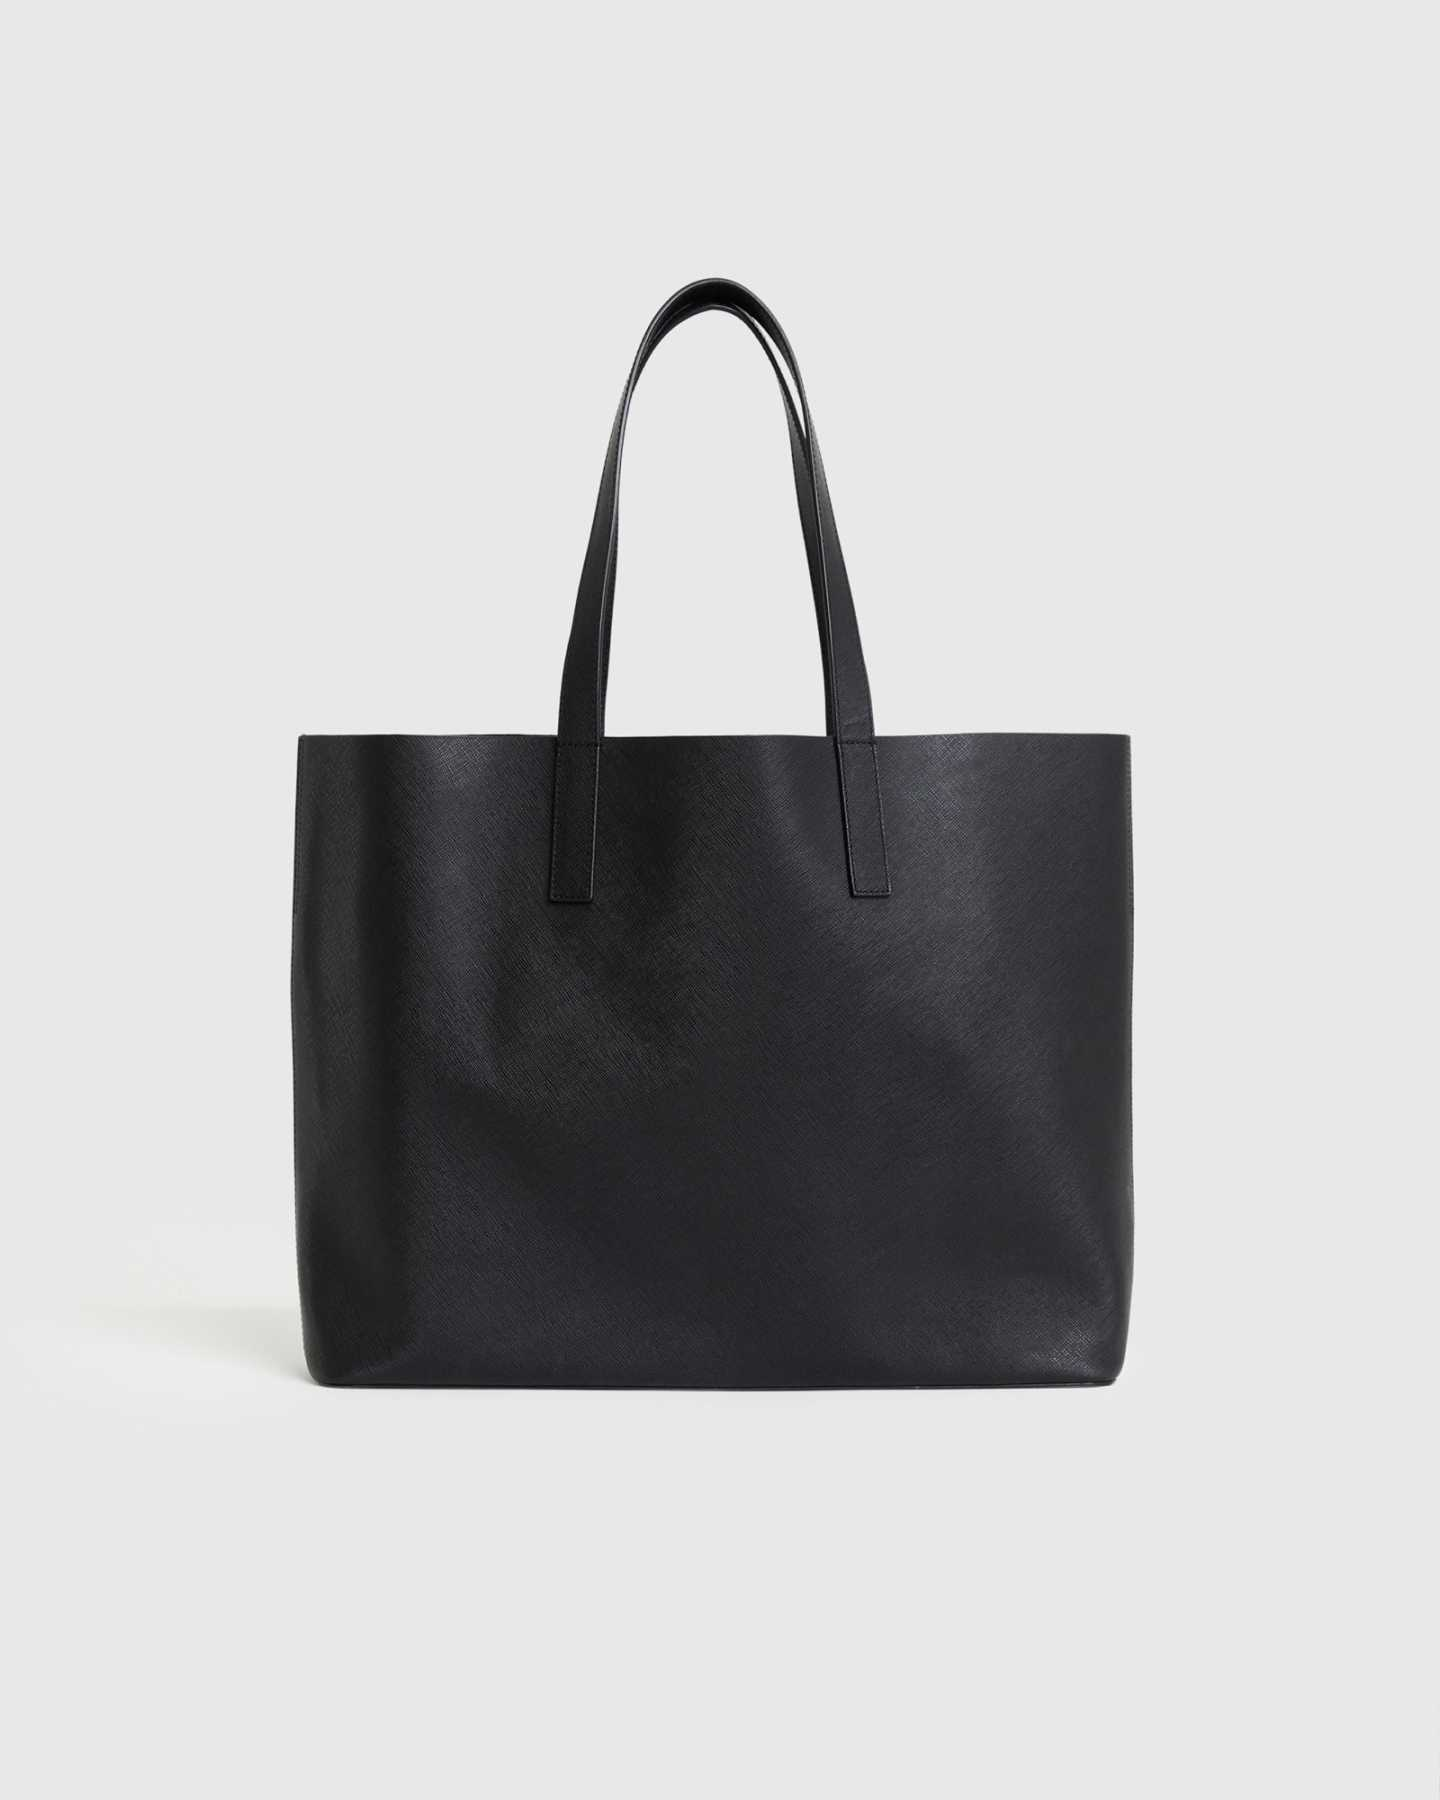 Deconstructed Everyday Tote - Black